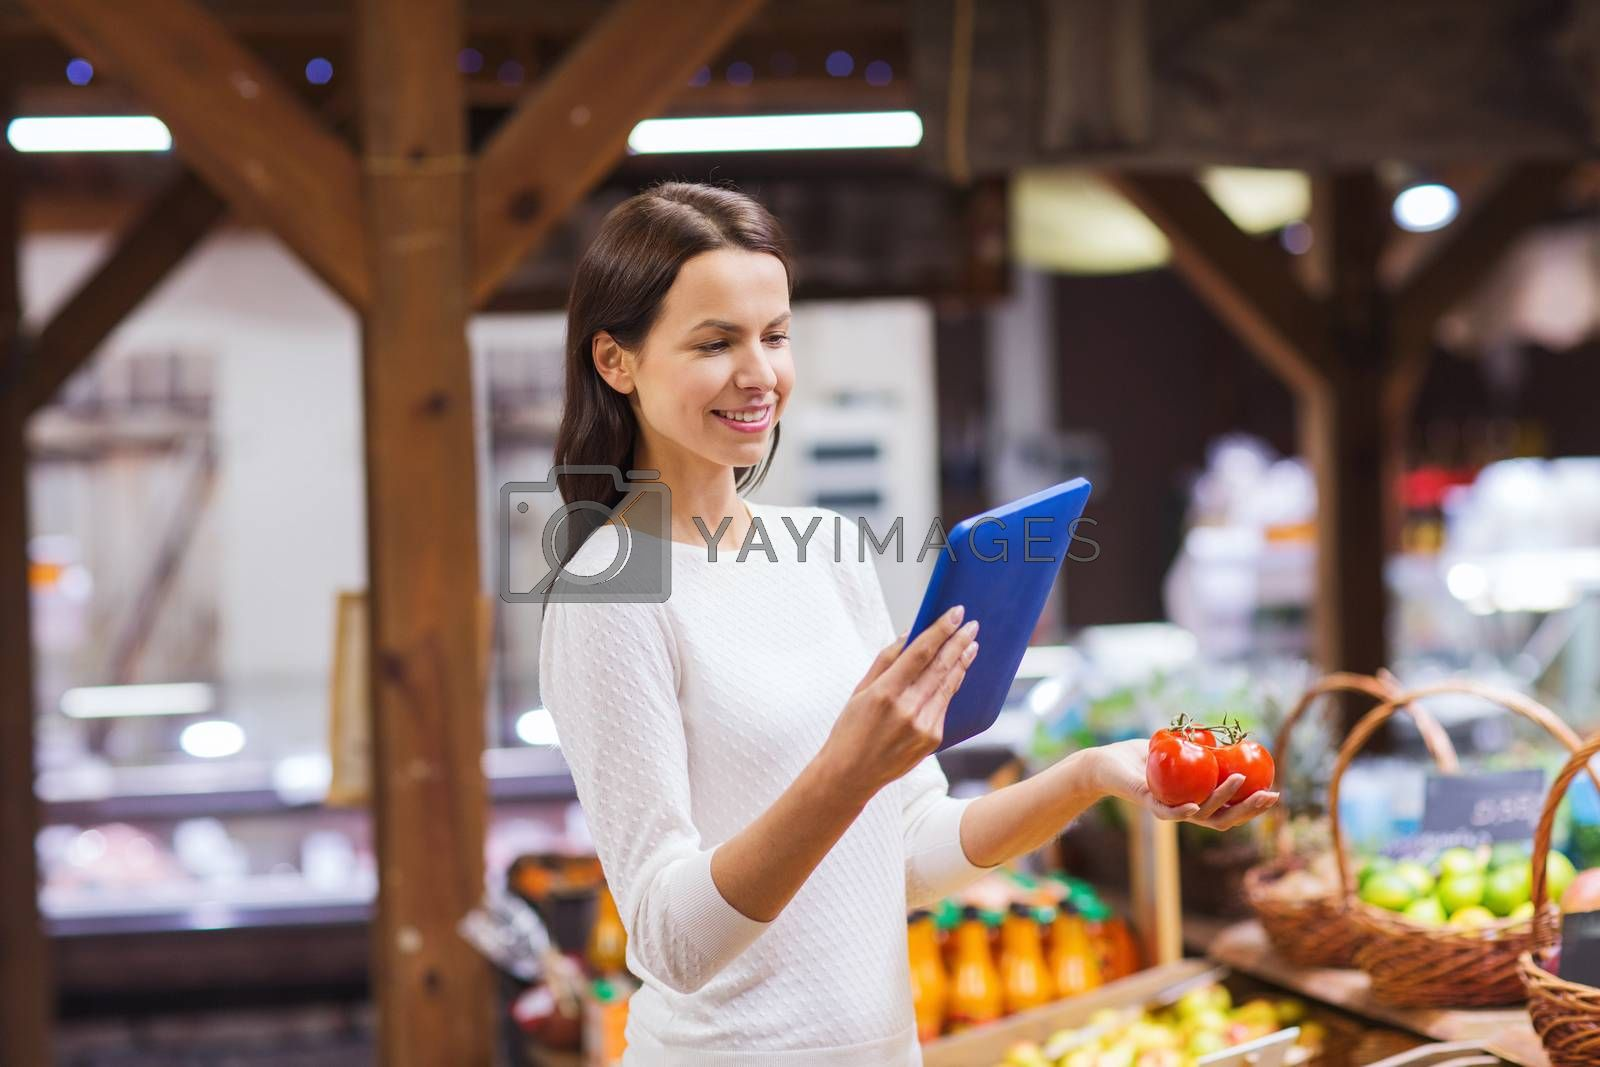 sale, shopping, consumerism and people concept - happy young woman with tomatoes and tablet pc computer in market